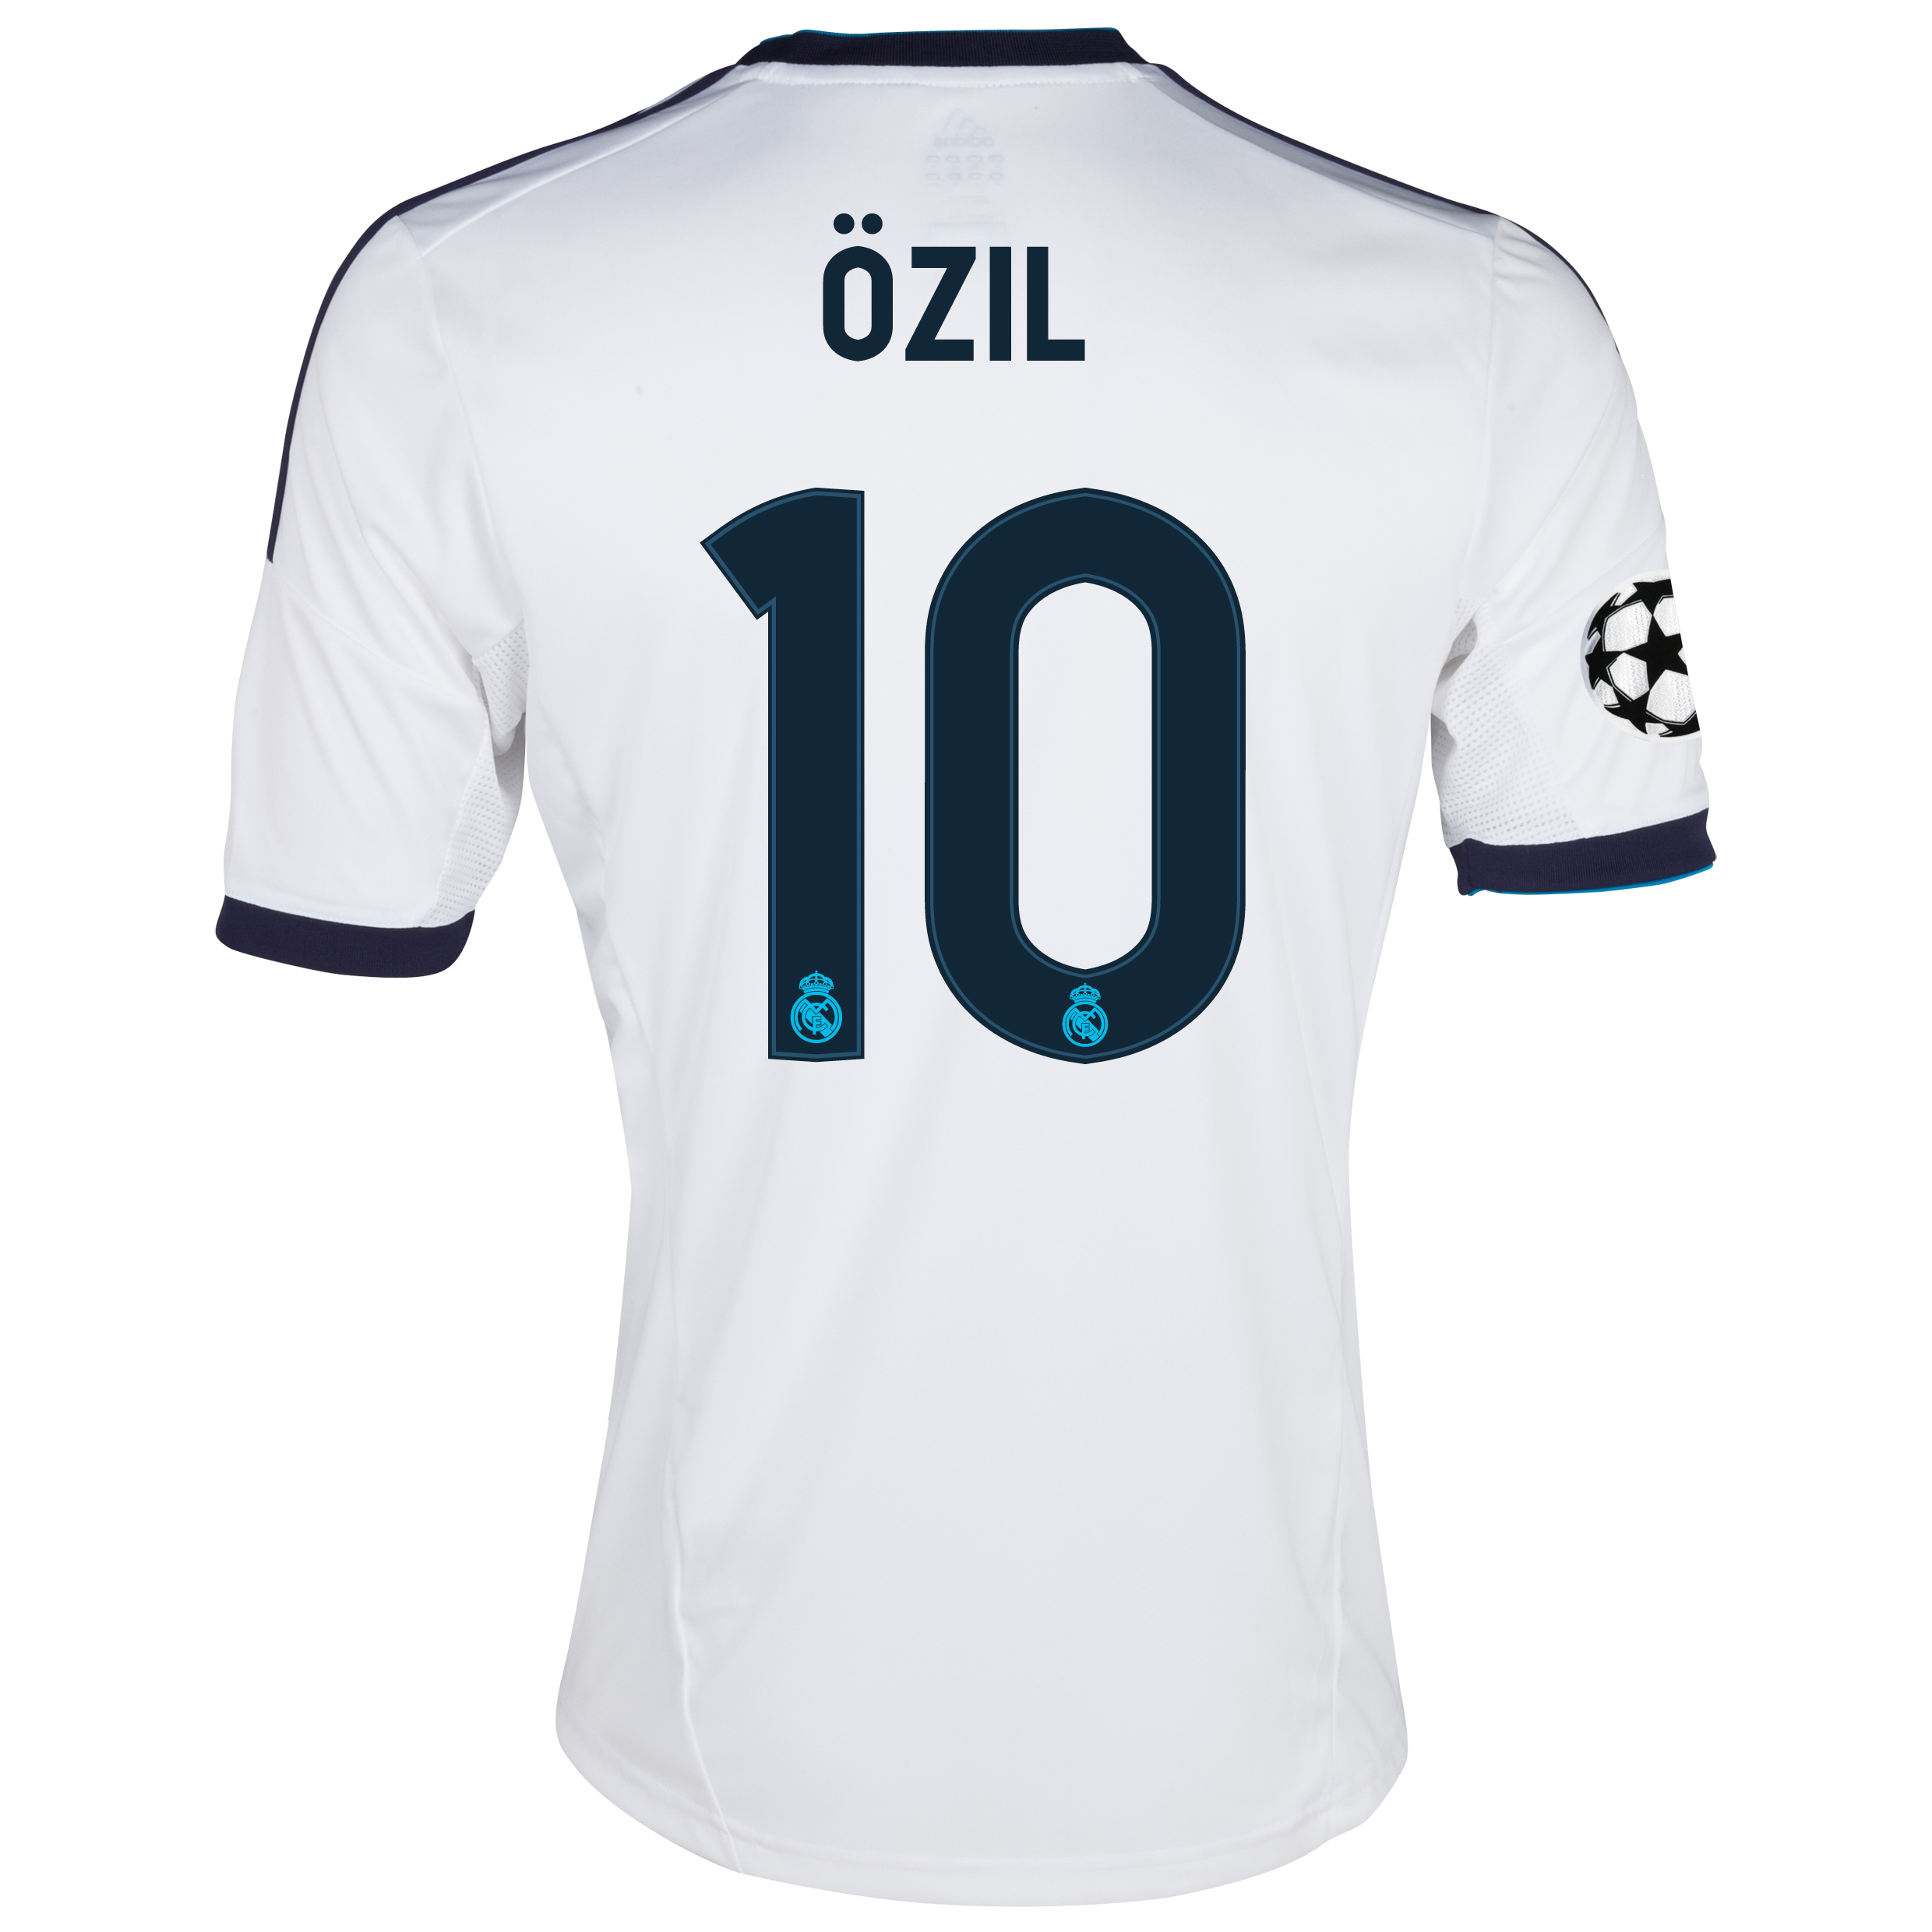 Real Madrid UEFA Champions League Home Shirt 2012/13 with zil 10 printing